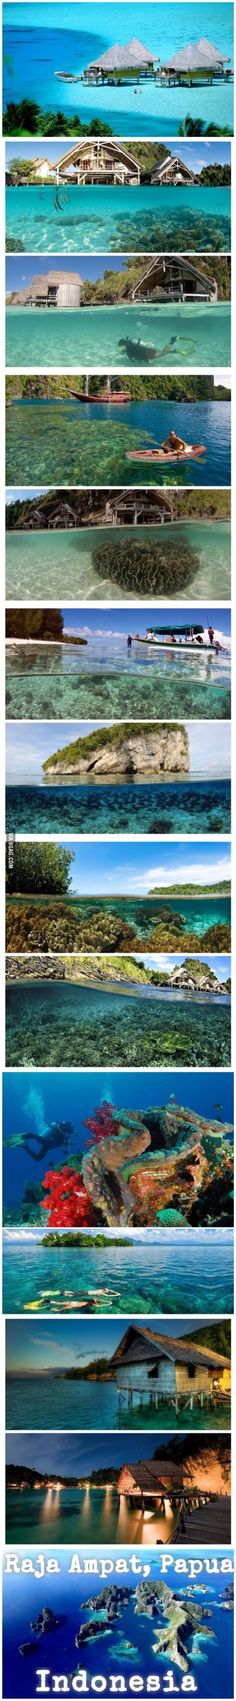 Raja Ampat, Papua, Indonesia- Explore the World with Travel Nerd Nici, one Country at a Time. http://TravelNerdNici.com